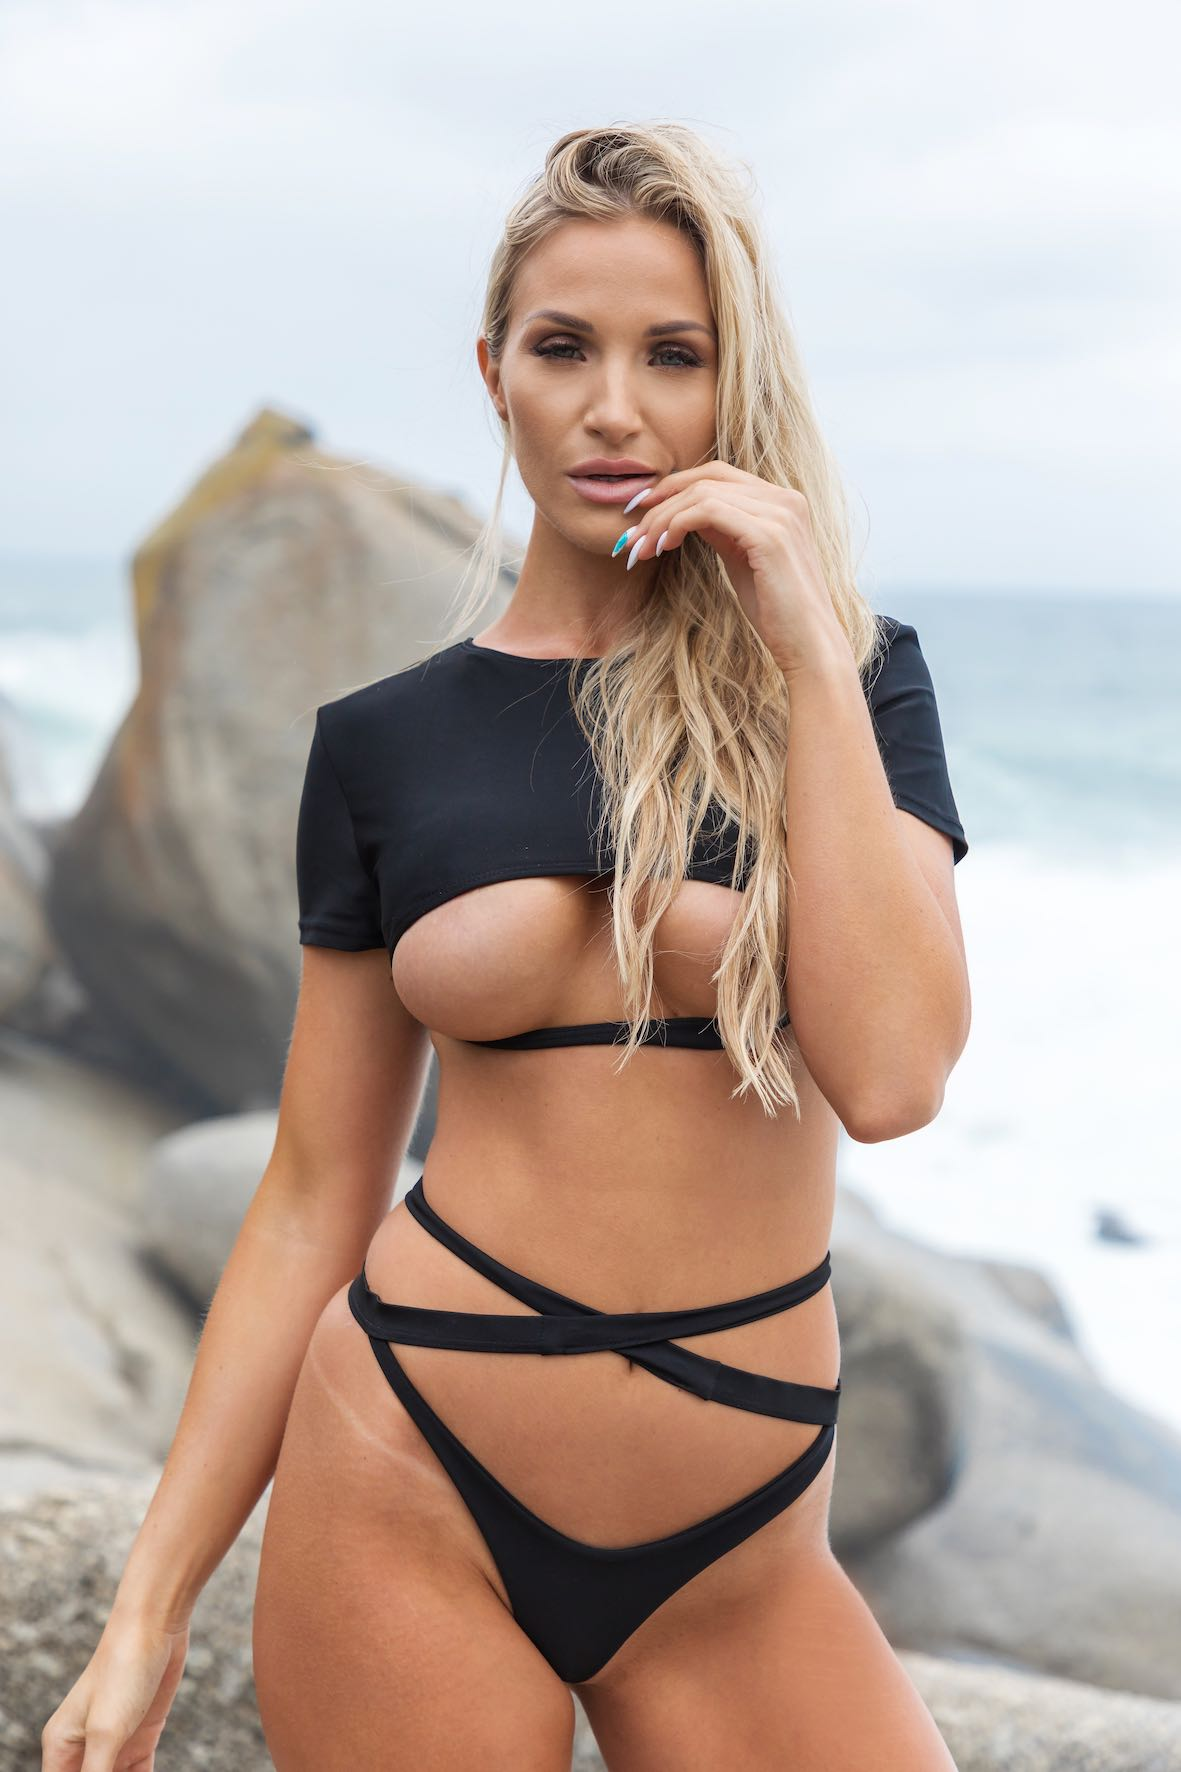 Meet Kayla Baker in our South African Girls feature